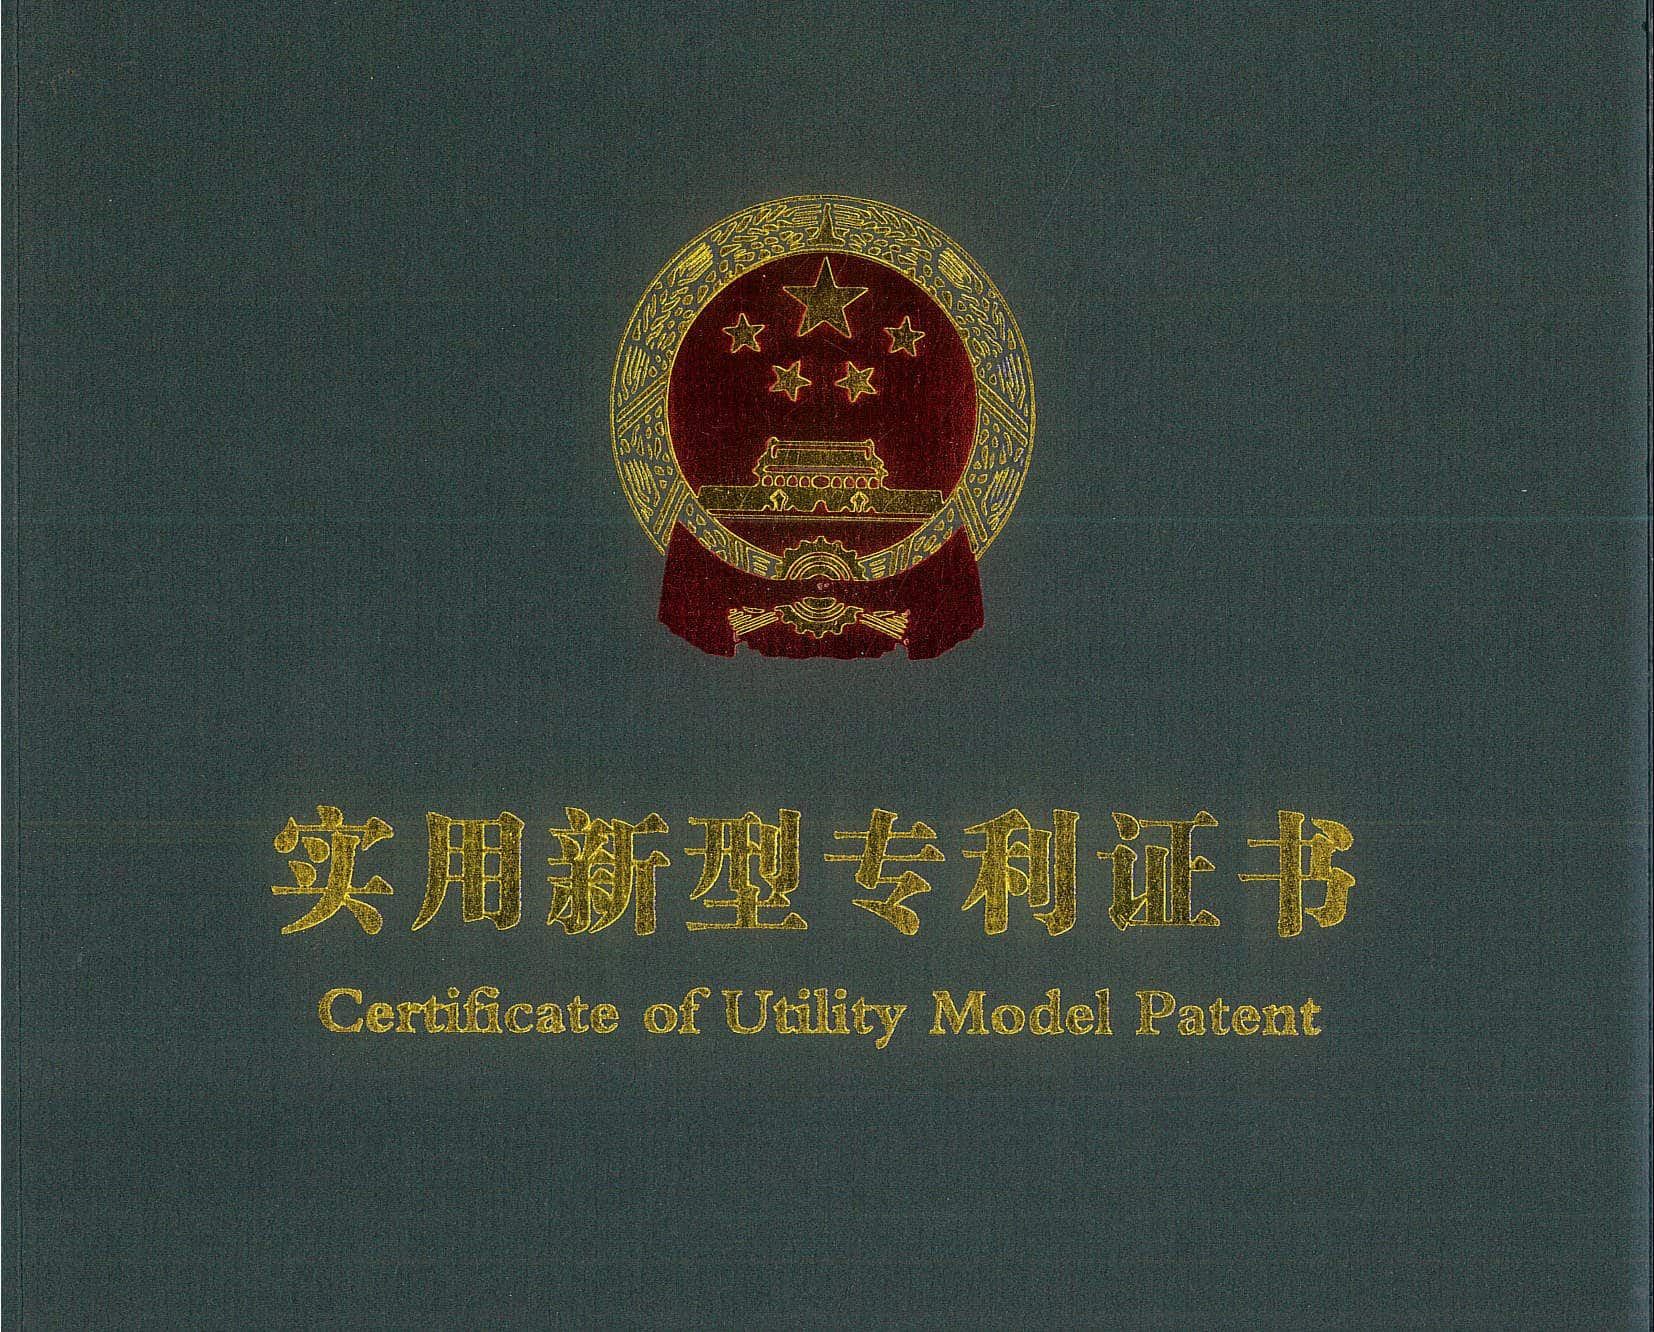 Obtained 8 patent model certificates issued by China Intellectual Property Bureau.